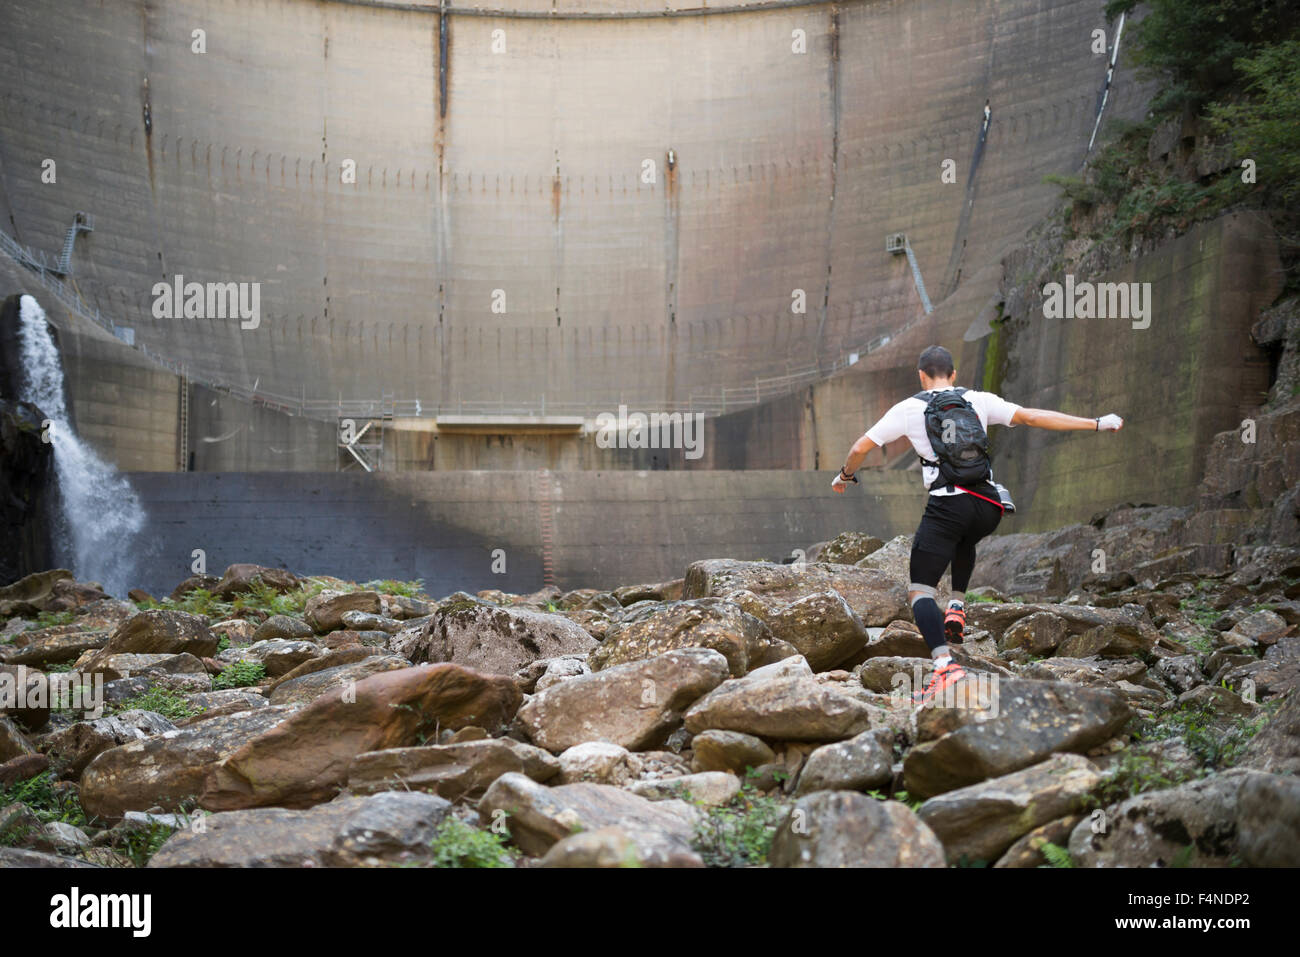 Ultra trail runner jumping on the rocks of a river in nature - Stock Image